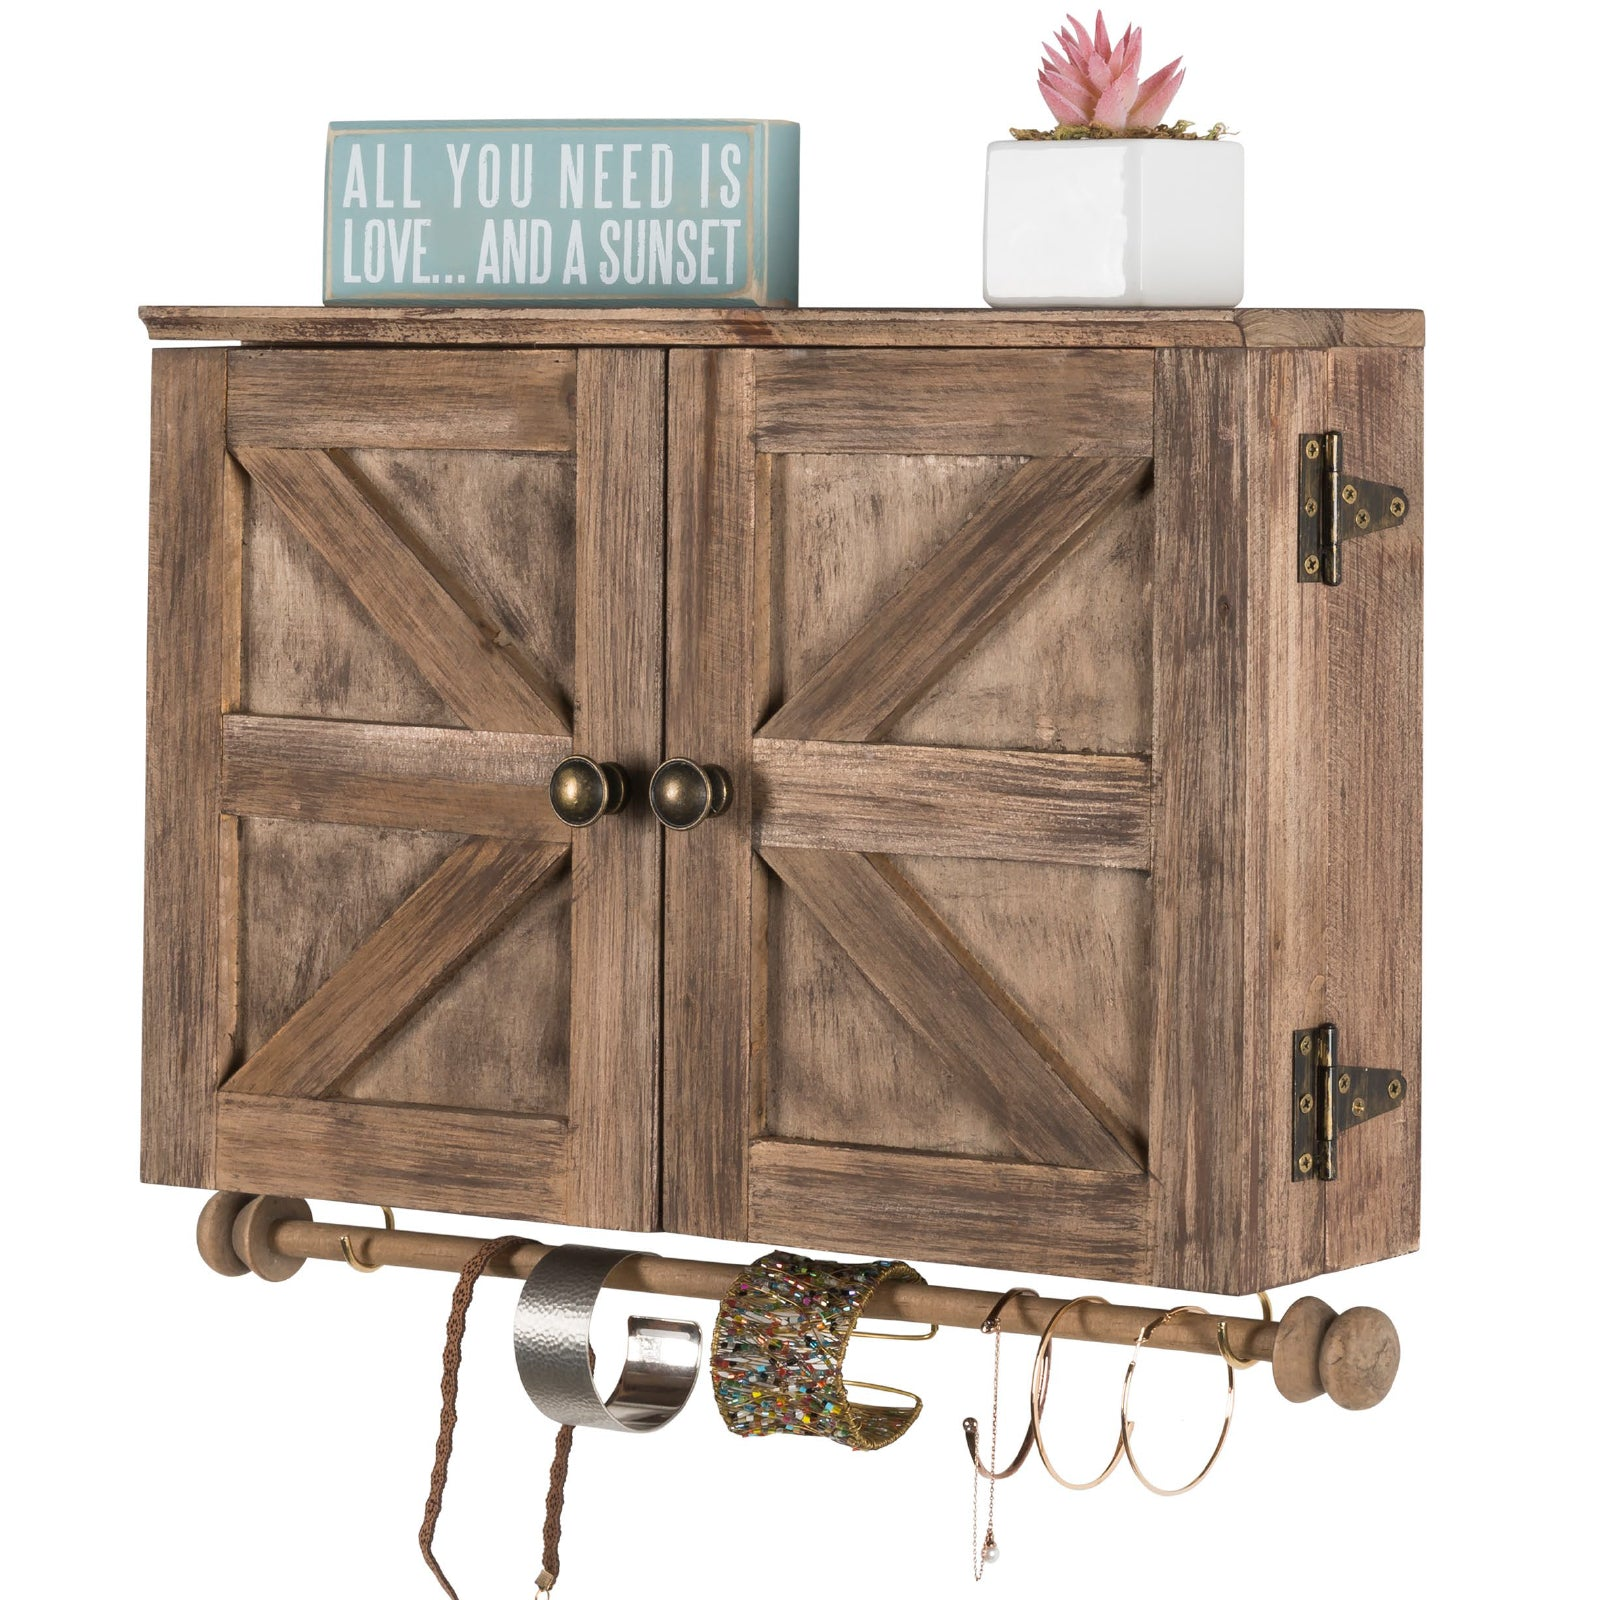 Rustic Wall Mounted Jewelry Organizer with Wooden Barndoor Decor Brown